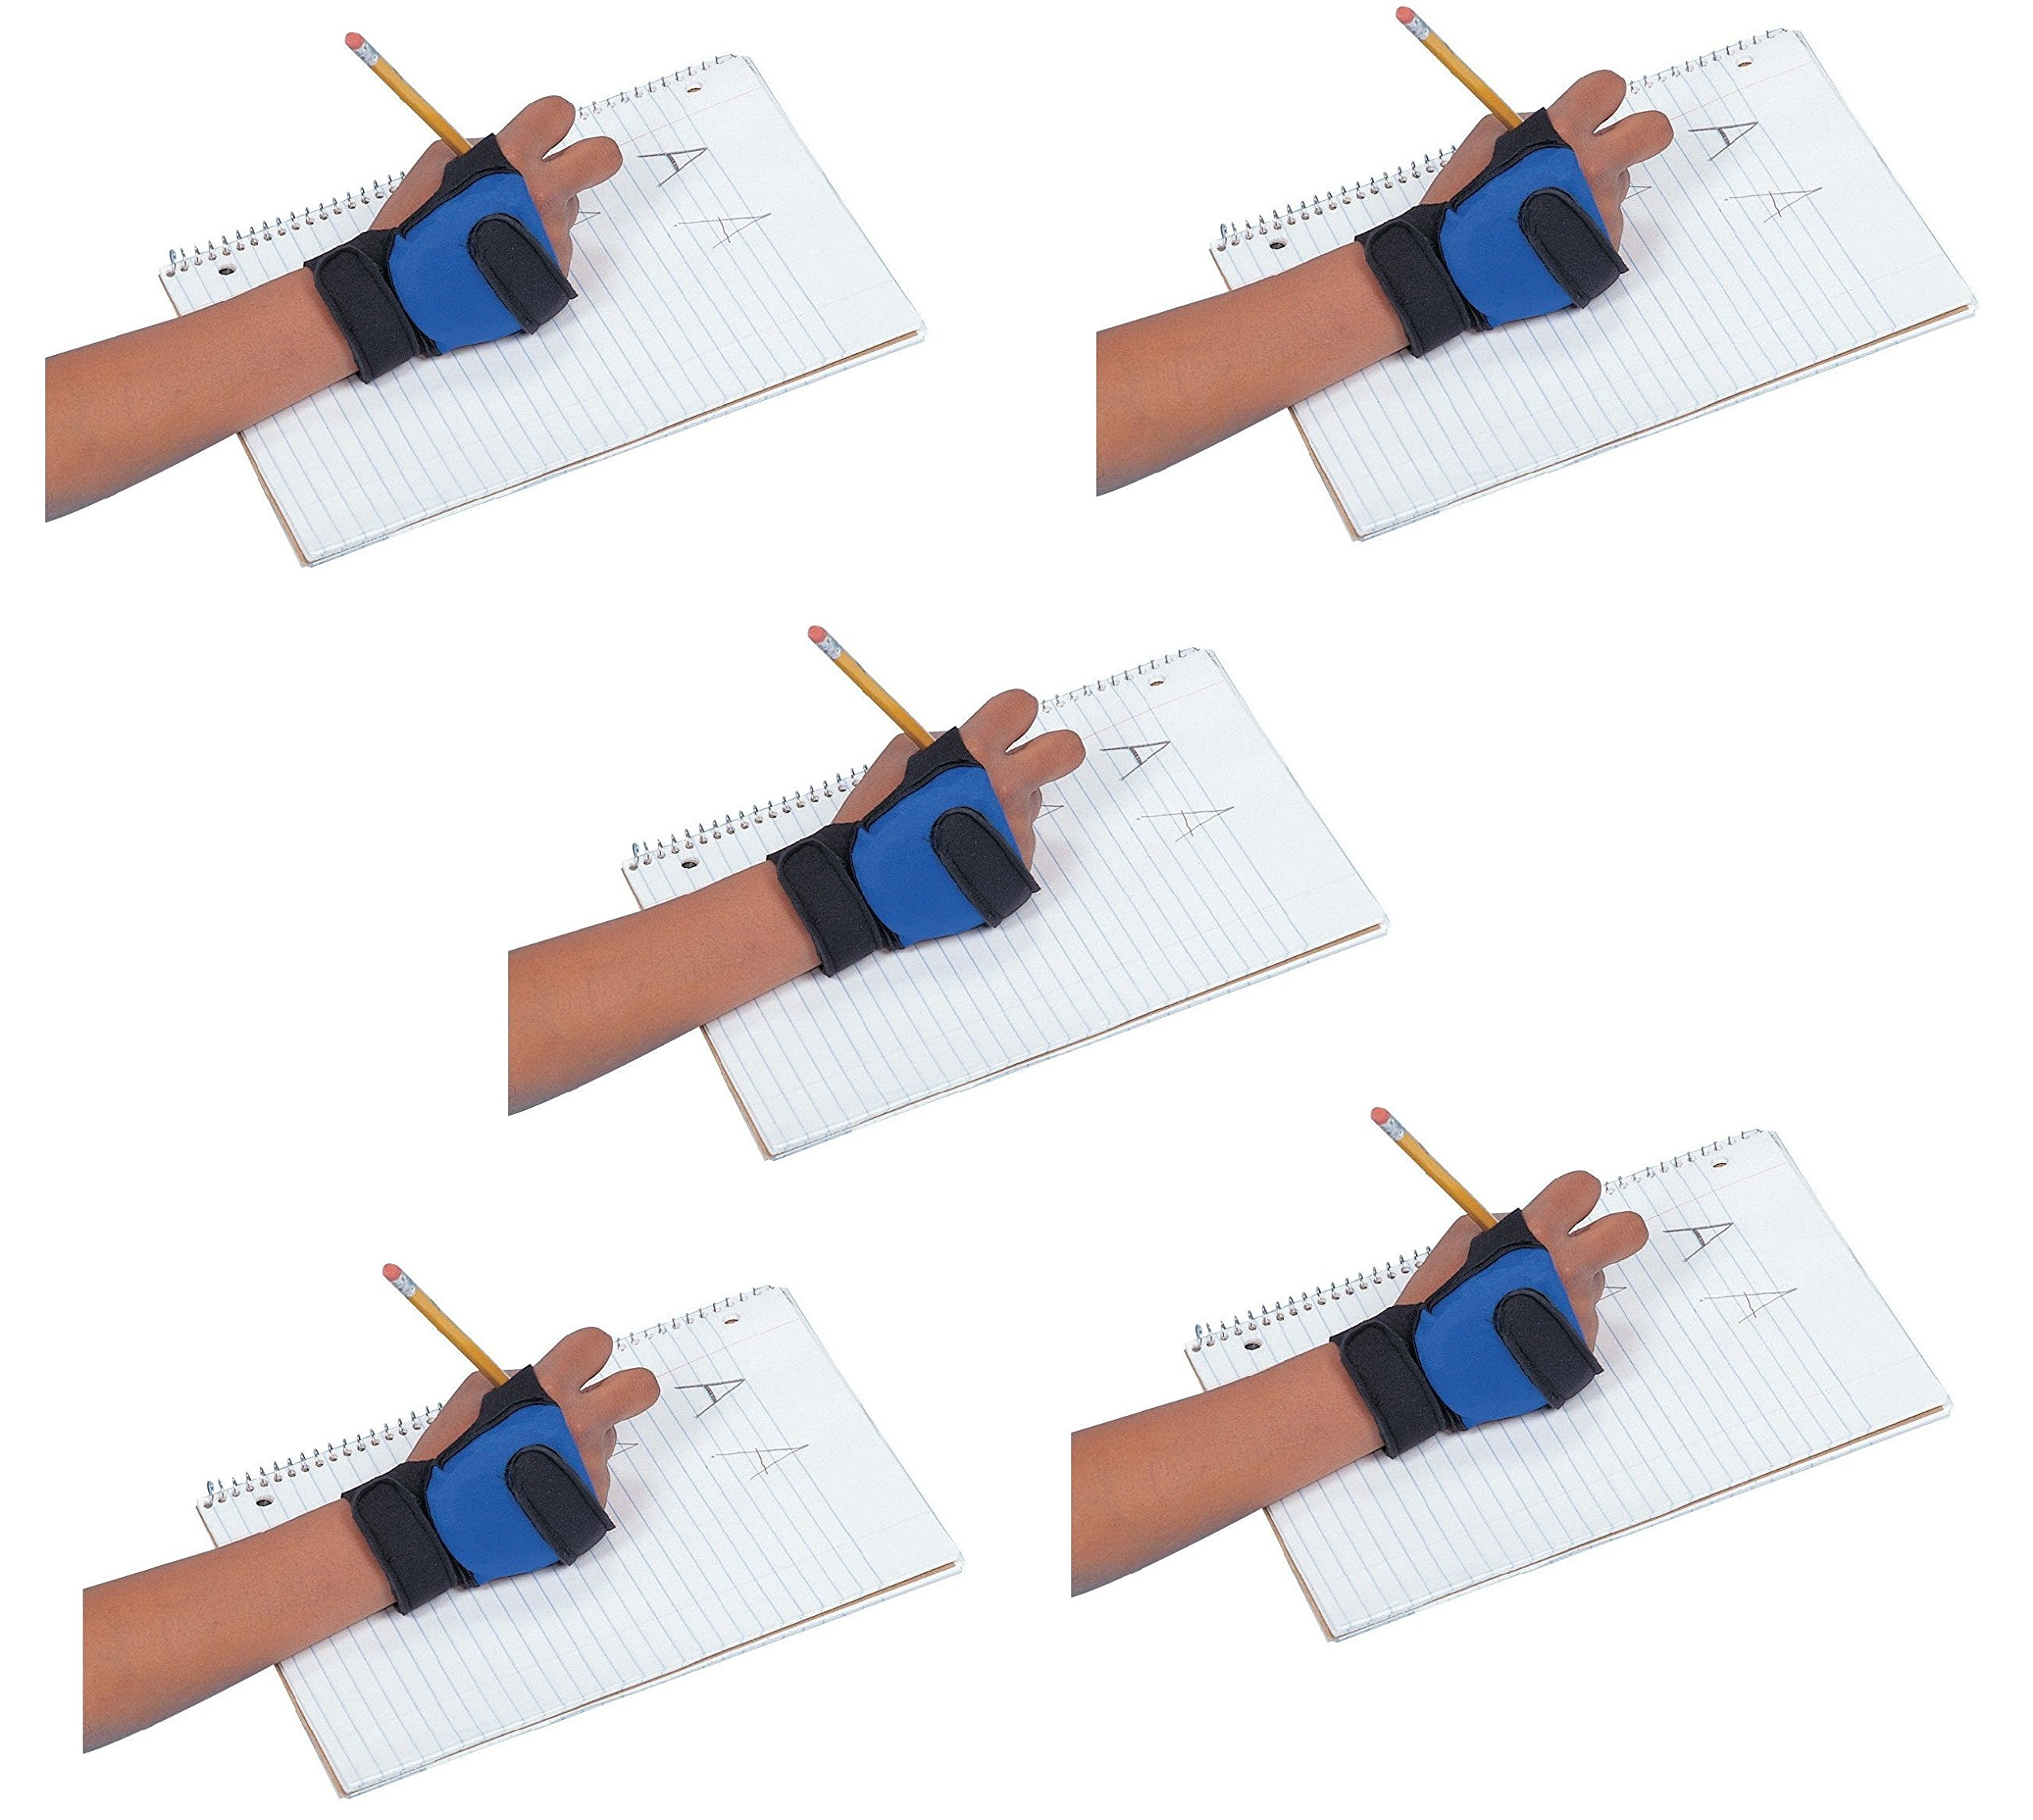 Abilitations 026712 Child Size Write Weight, Right Hand, 0.5 Pound (5 pack)